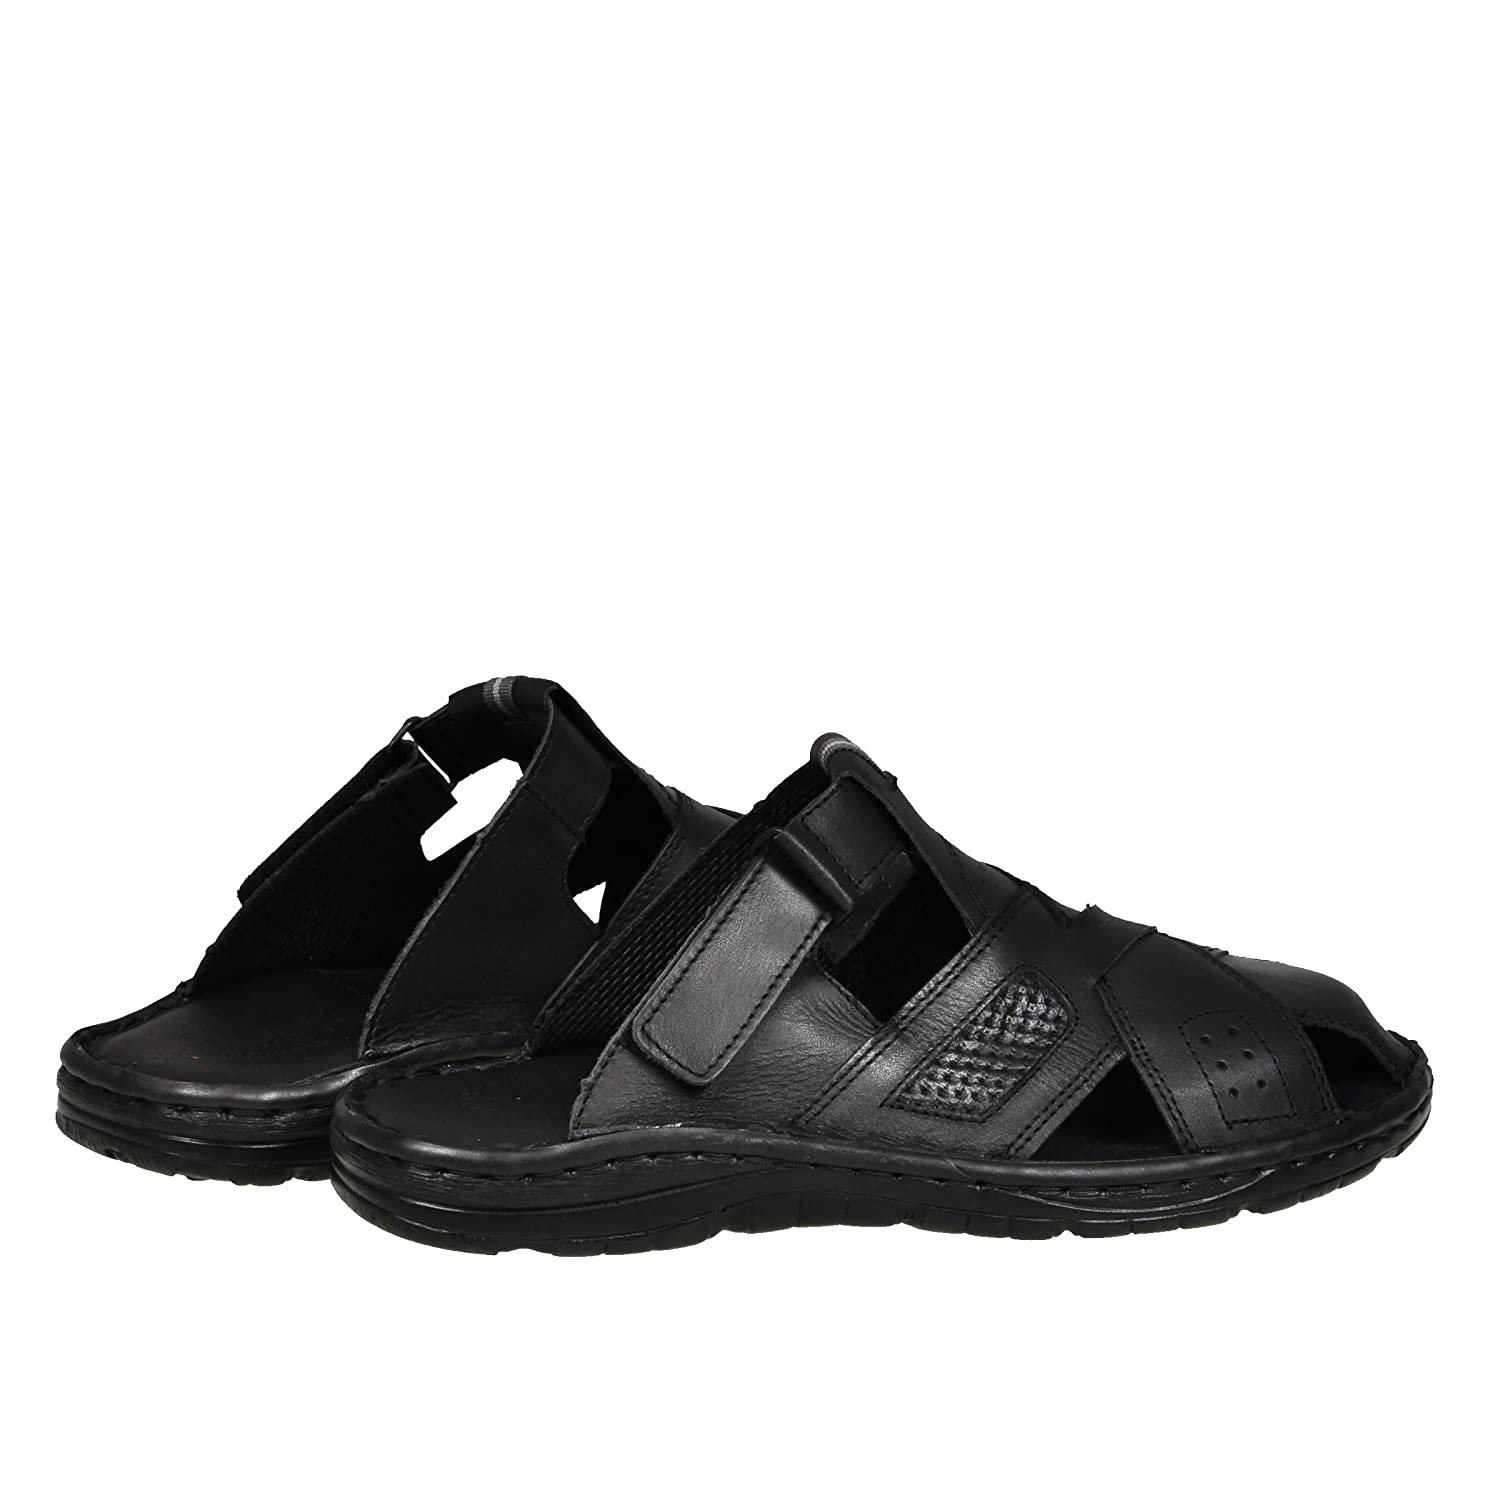 5cc41bfd4817 Lukpol Genuine Buffalo Leather Mens Sandals Shoes Comfy Orthopedic Footwear  Model-868  Amazon.co.uk  Shoes   Bags